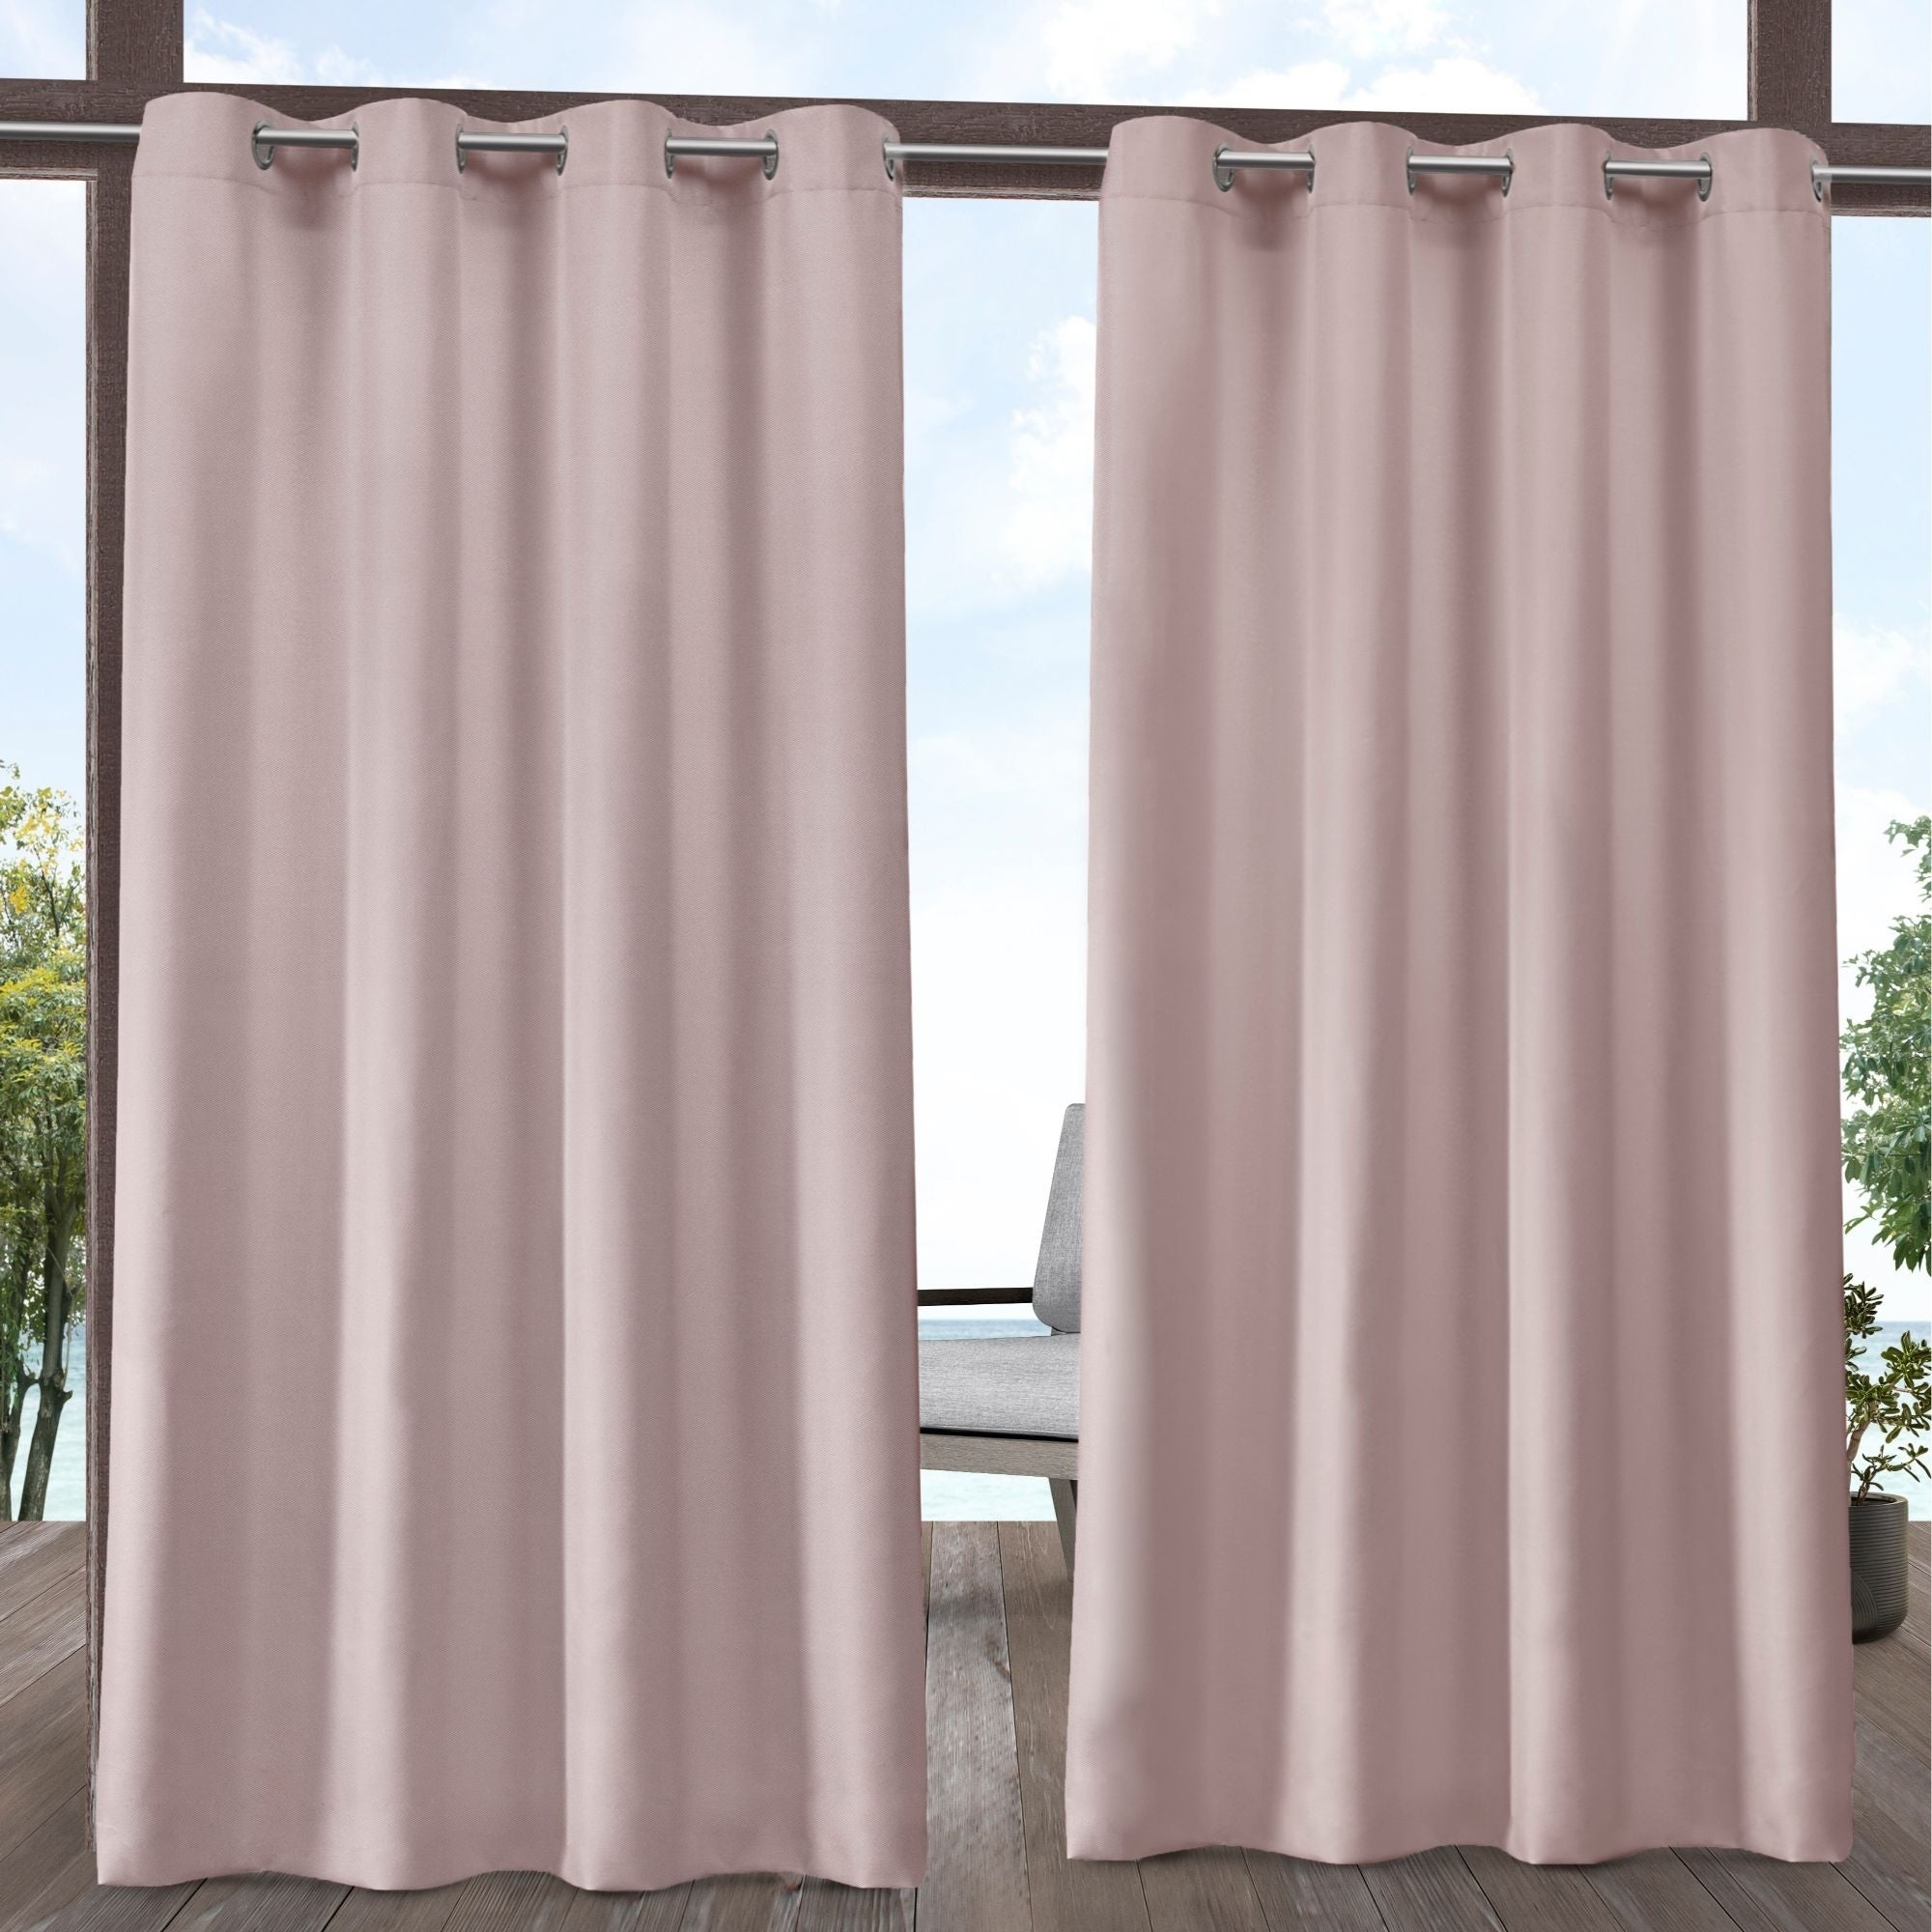 Ati Home Indoor/outdoor Solid Cabana Grommet Top Curtain Panel Pair Inside Solid Grommet Top Curtain Panel Pairs (View 16 of 30)